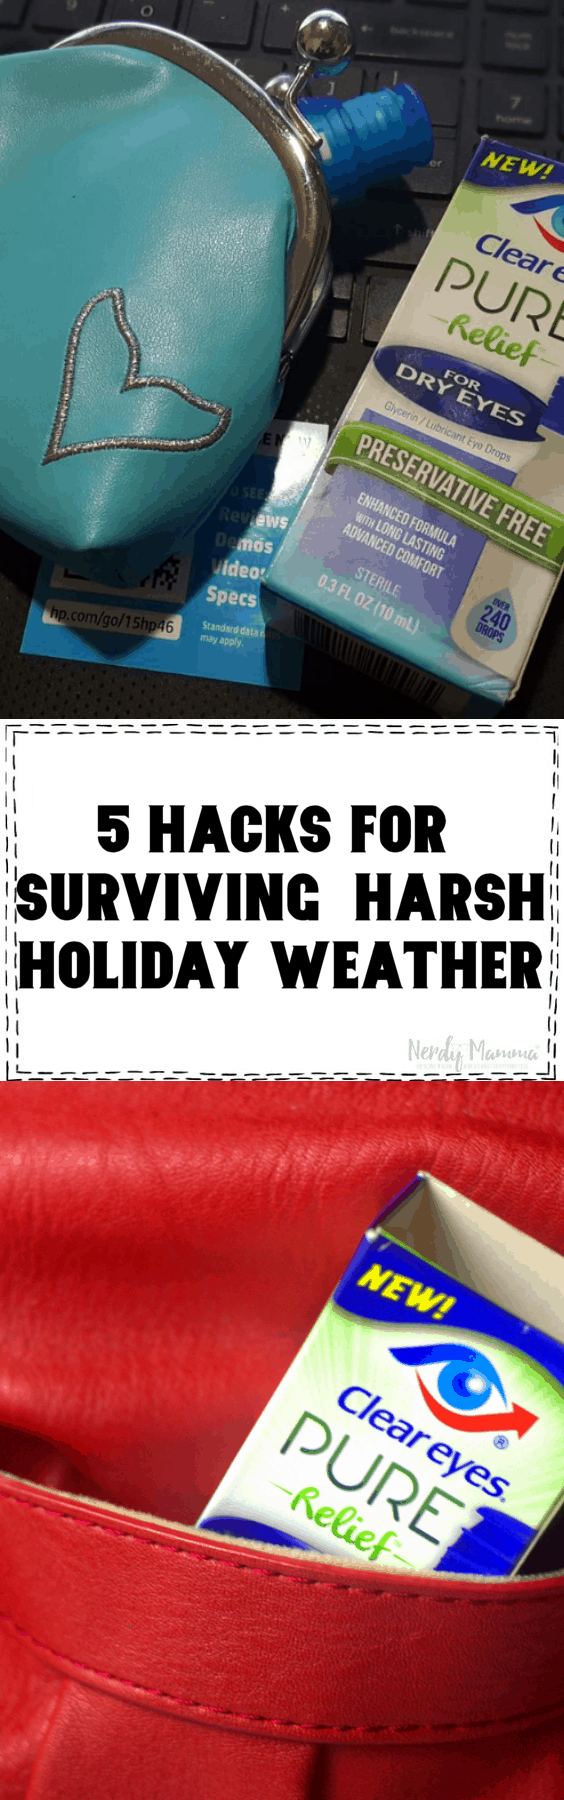 5 HACKS FOR SURVIVING HARSH HOLIDAY WEATHER